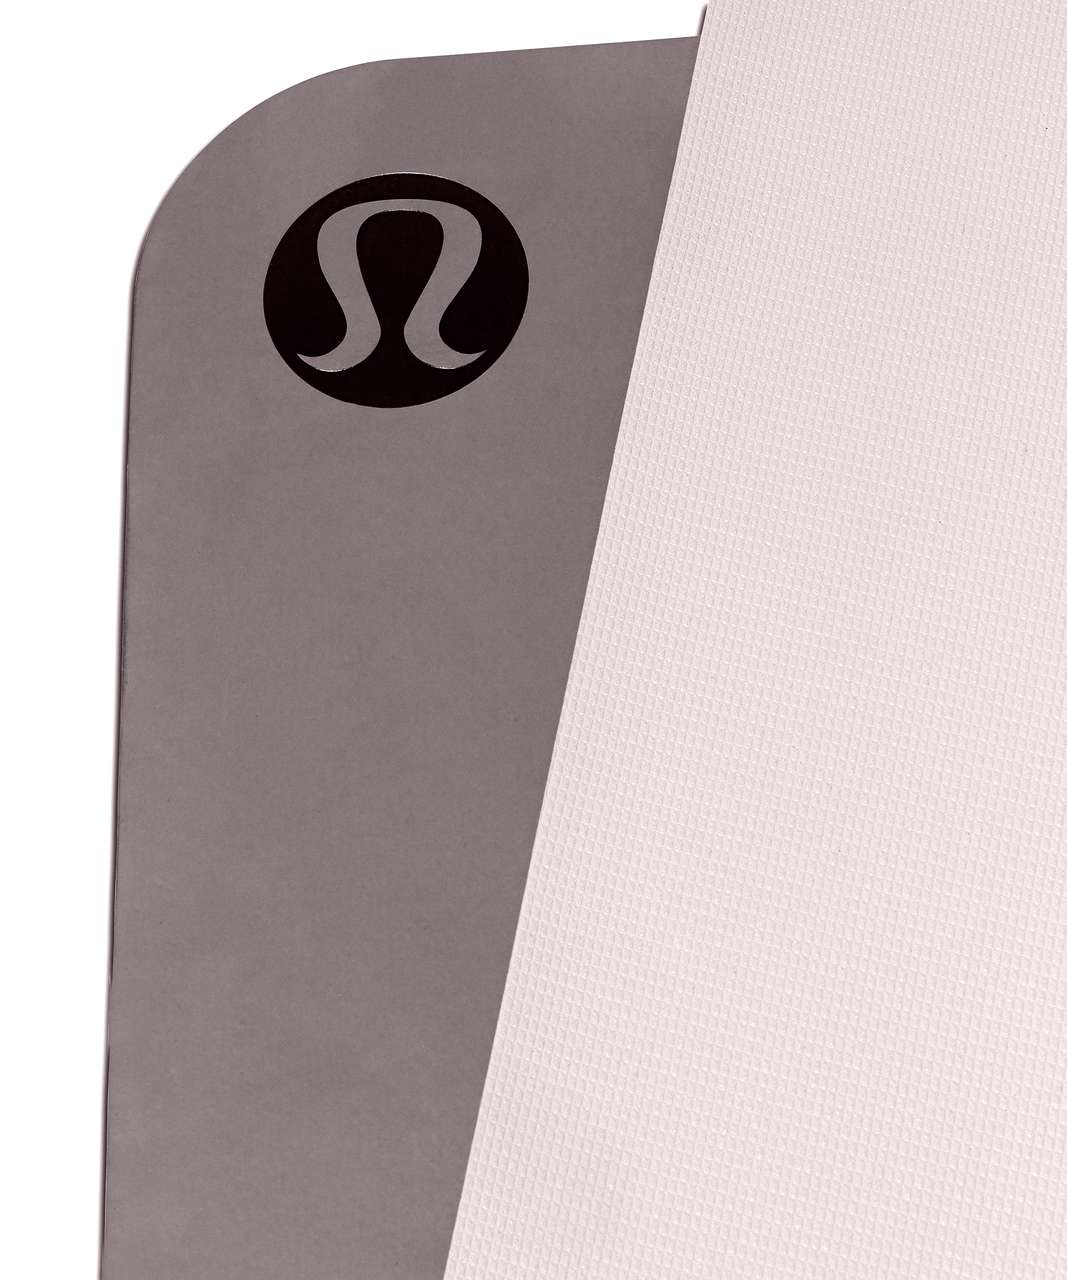 Lululemon The Reversible Mat 3mm Taryn Toomey Collection